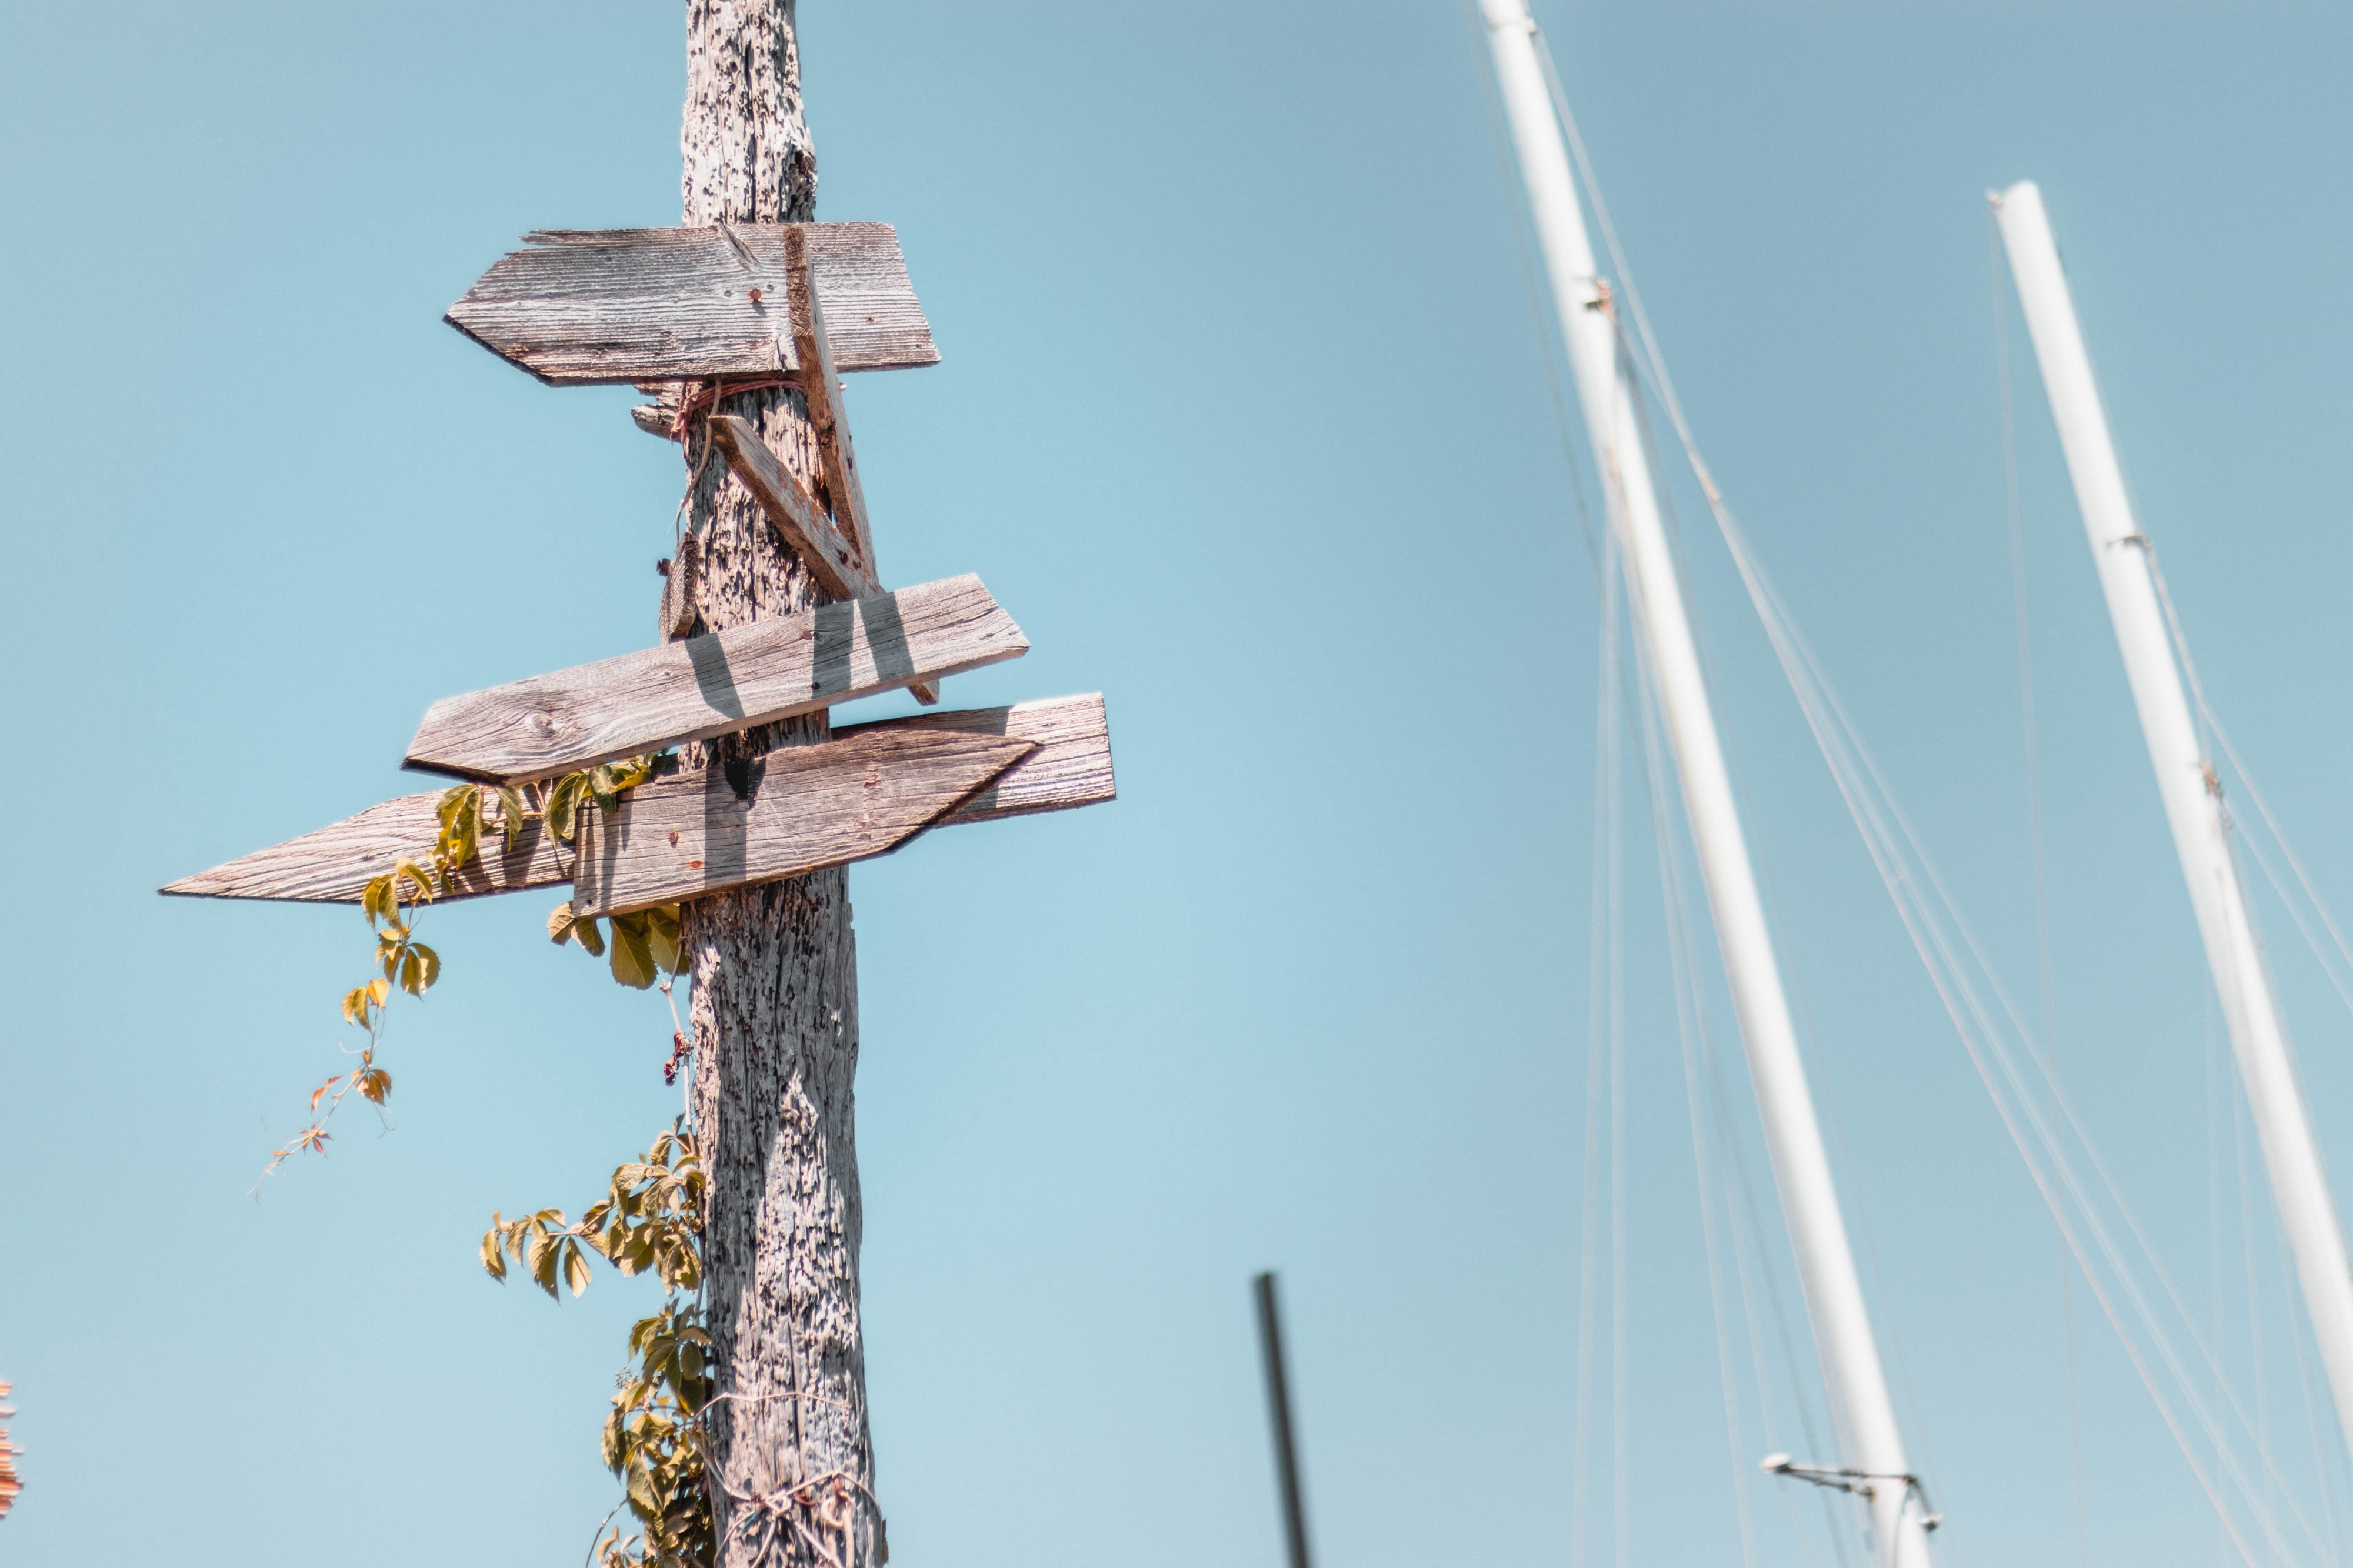 Wooden signpost with multiple directions being pointed to, although with no words on, against a pale blue sky.